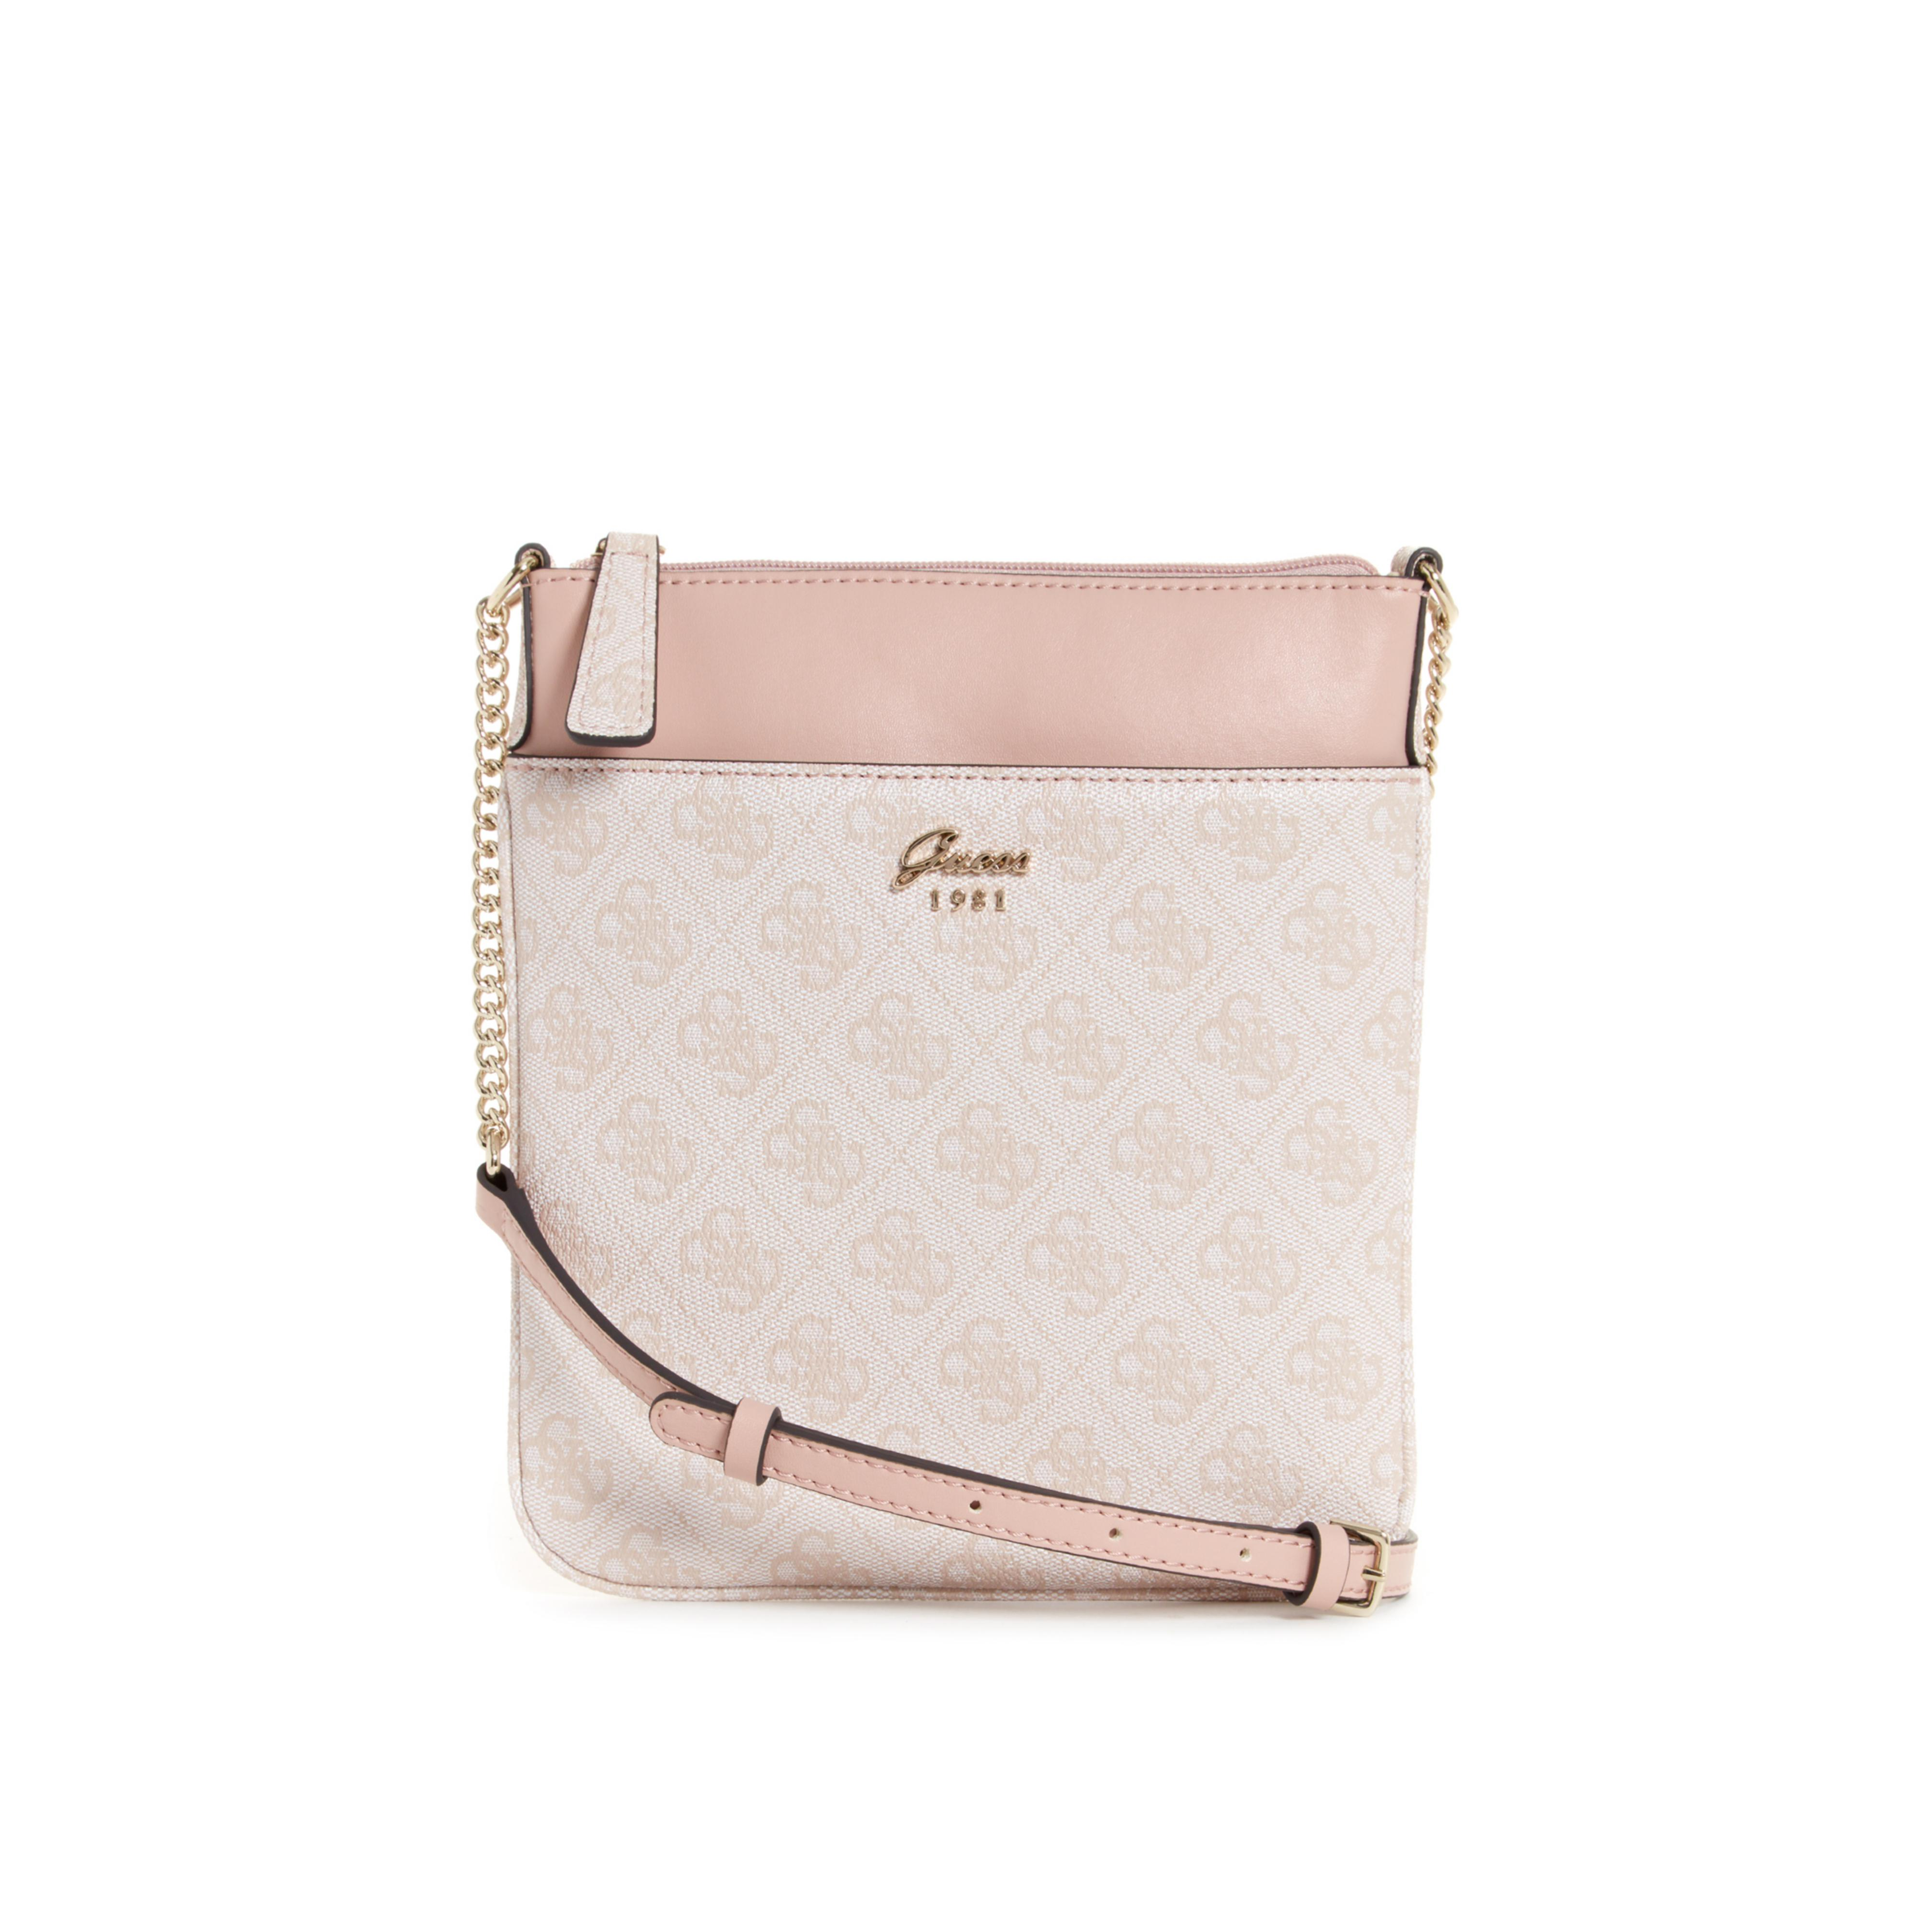 Guess Jacqui Mini Tourist Crossbody in Pink - Lyst 869bc43ed5